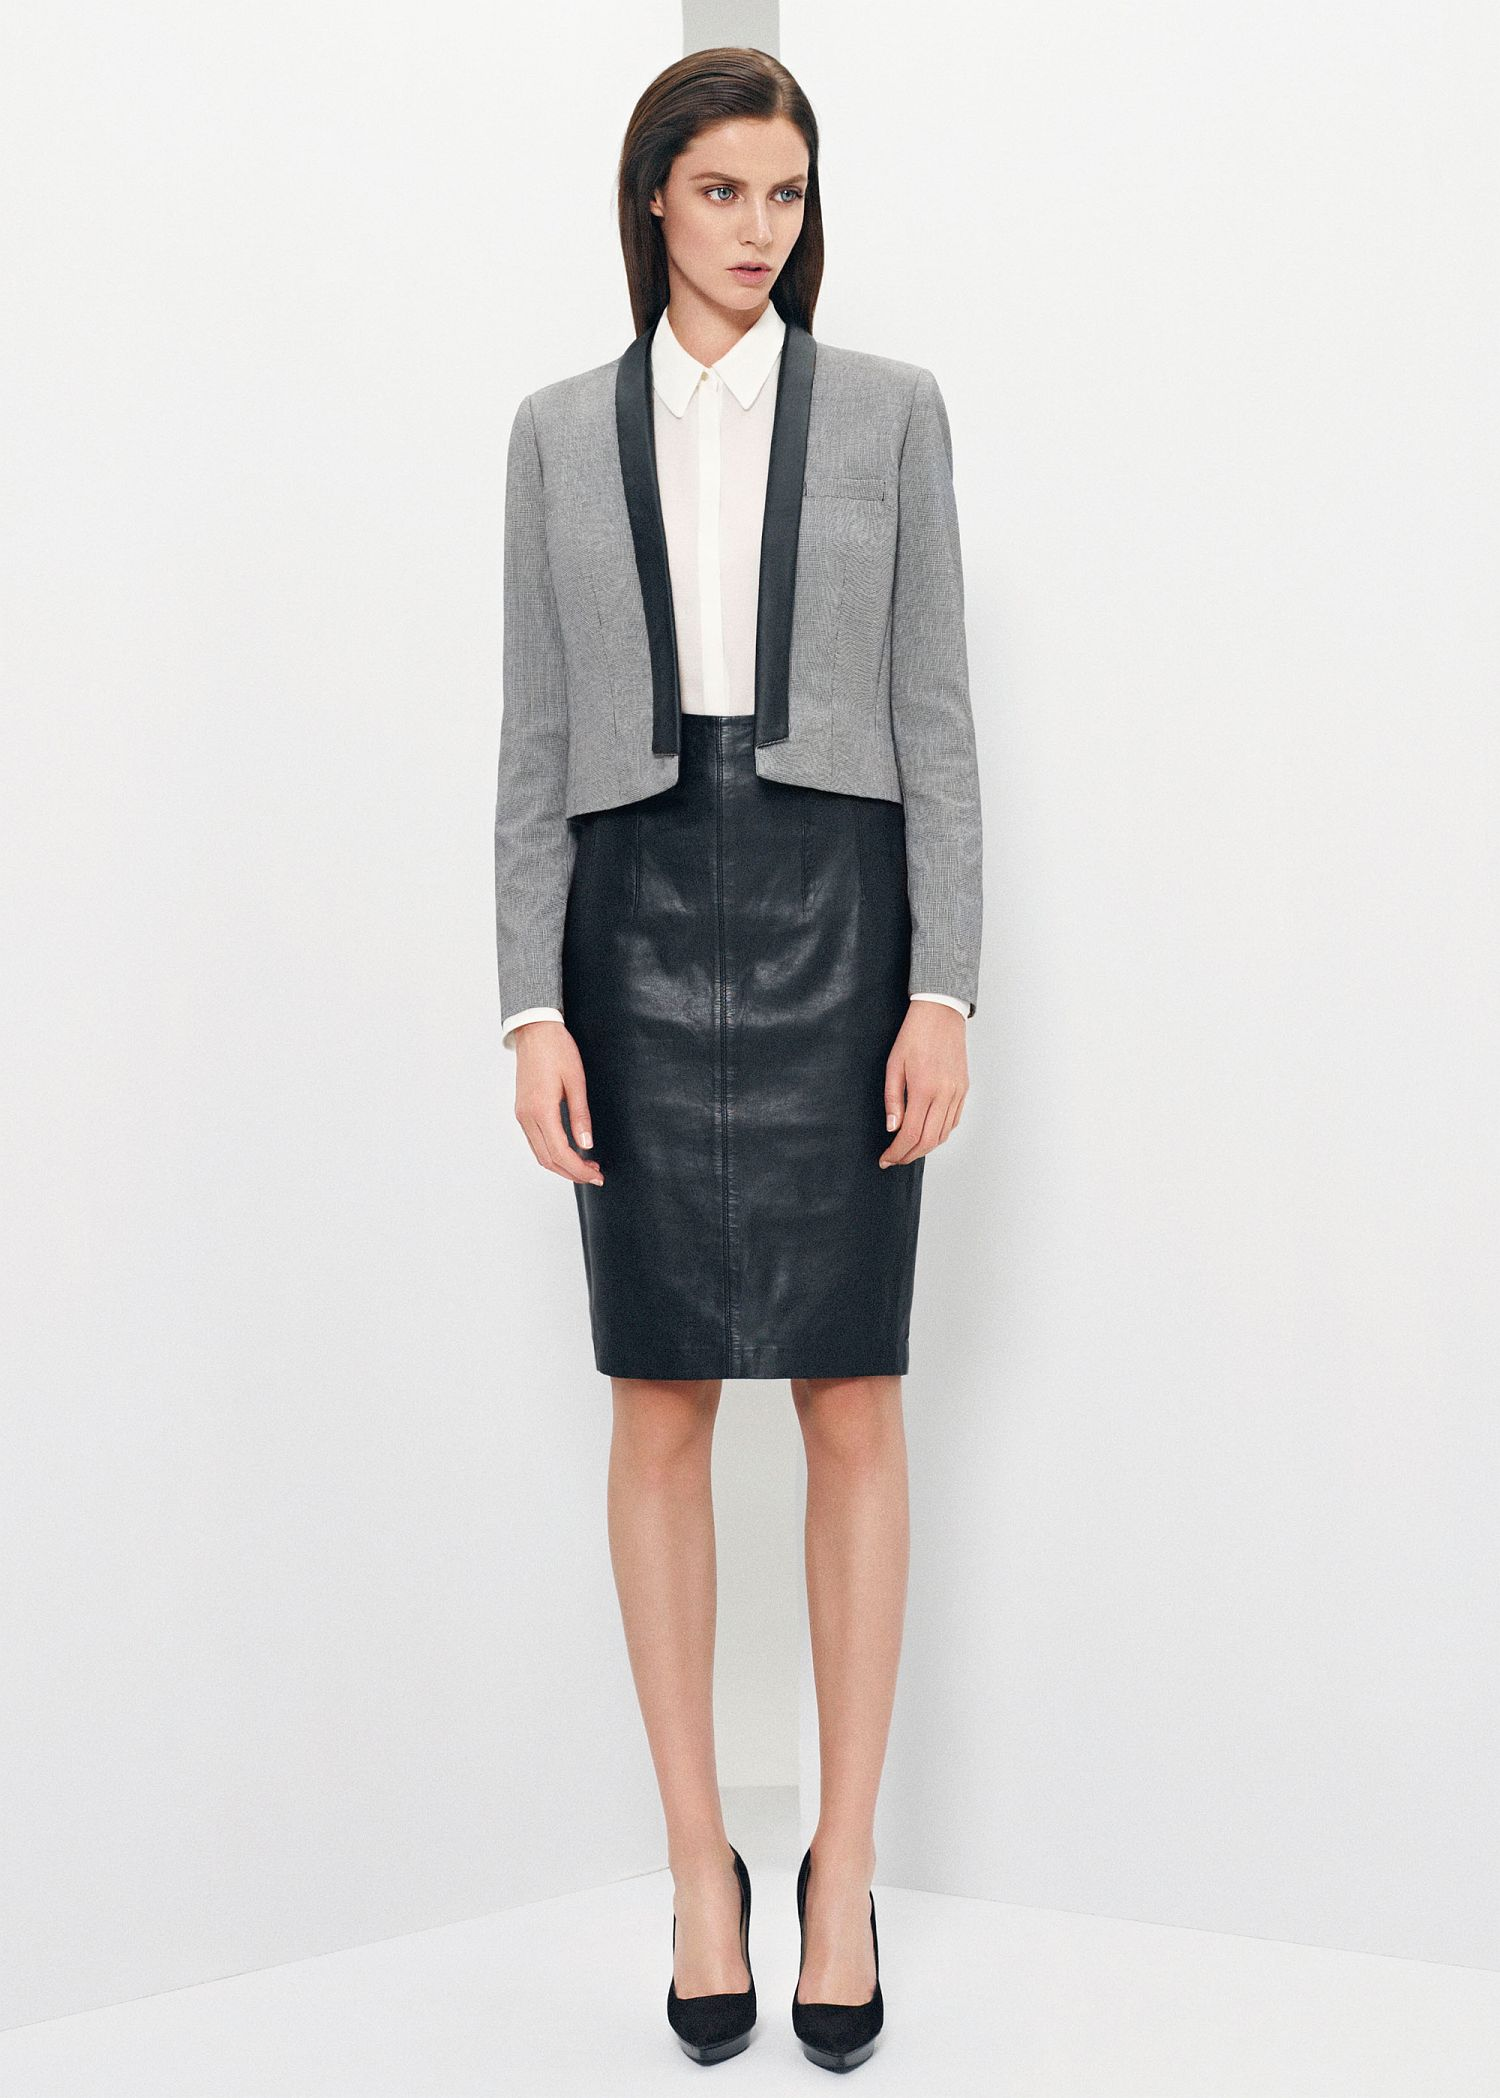 Mango Leather Pencil Skirt in Black | Lyst